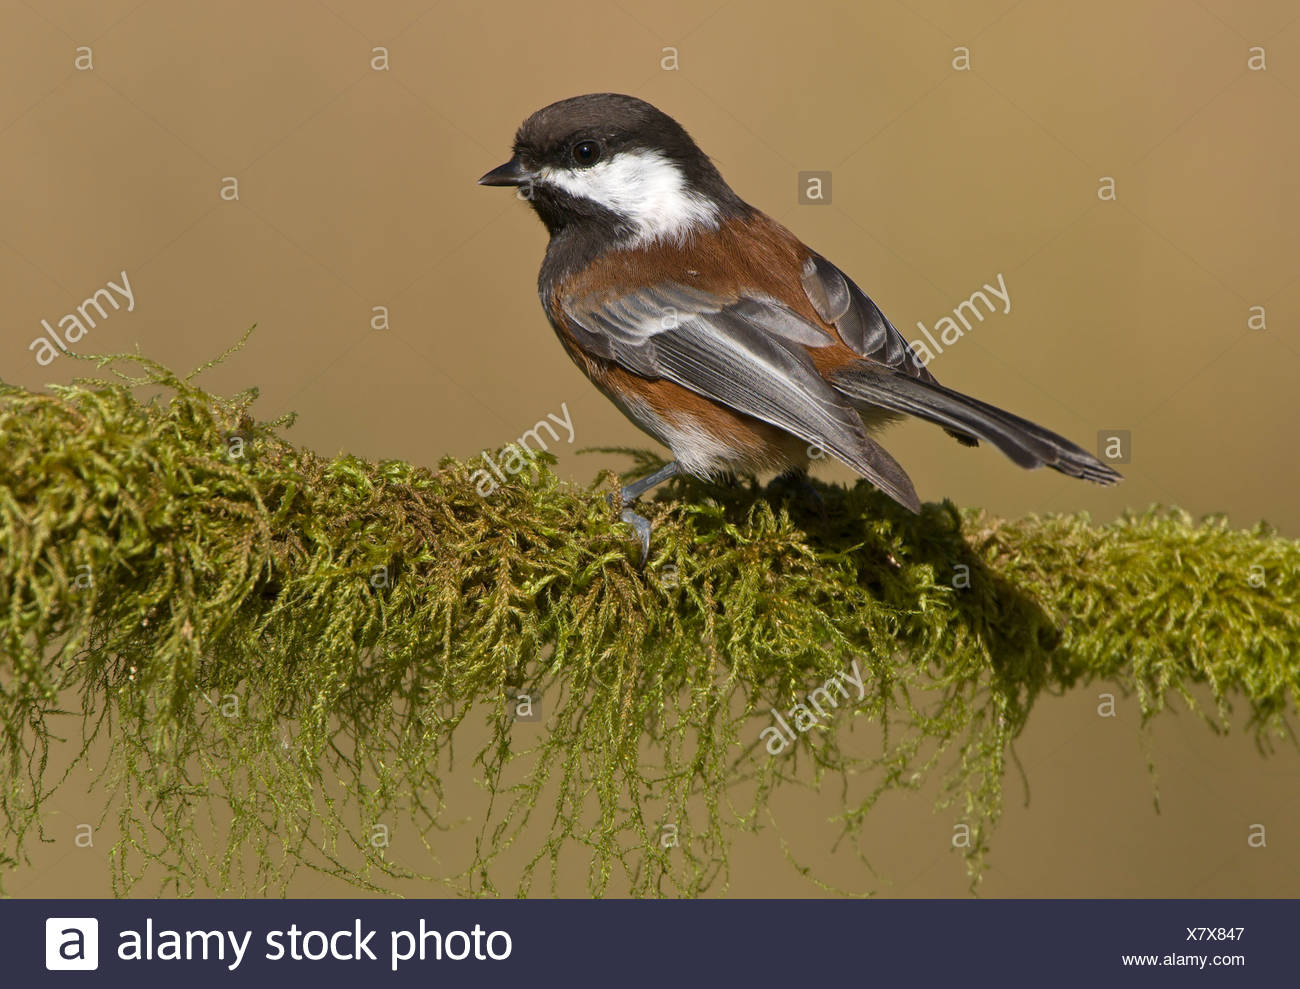 Chestnut-backed chickadee (Poecile rufescens) on mossy perch in Victoria, Vancouver Island, British Columbia, Canada - Stock Image